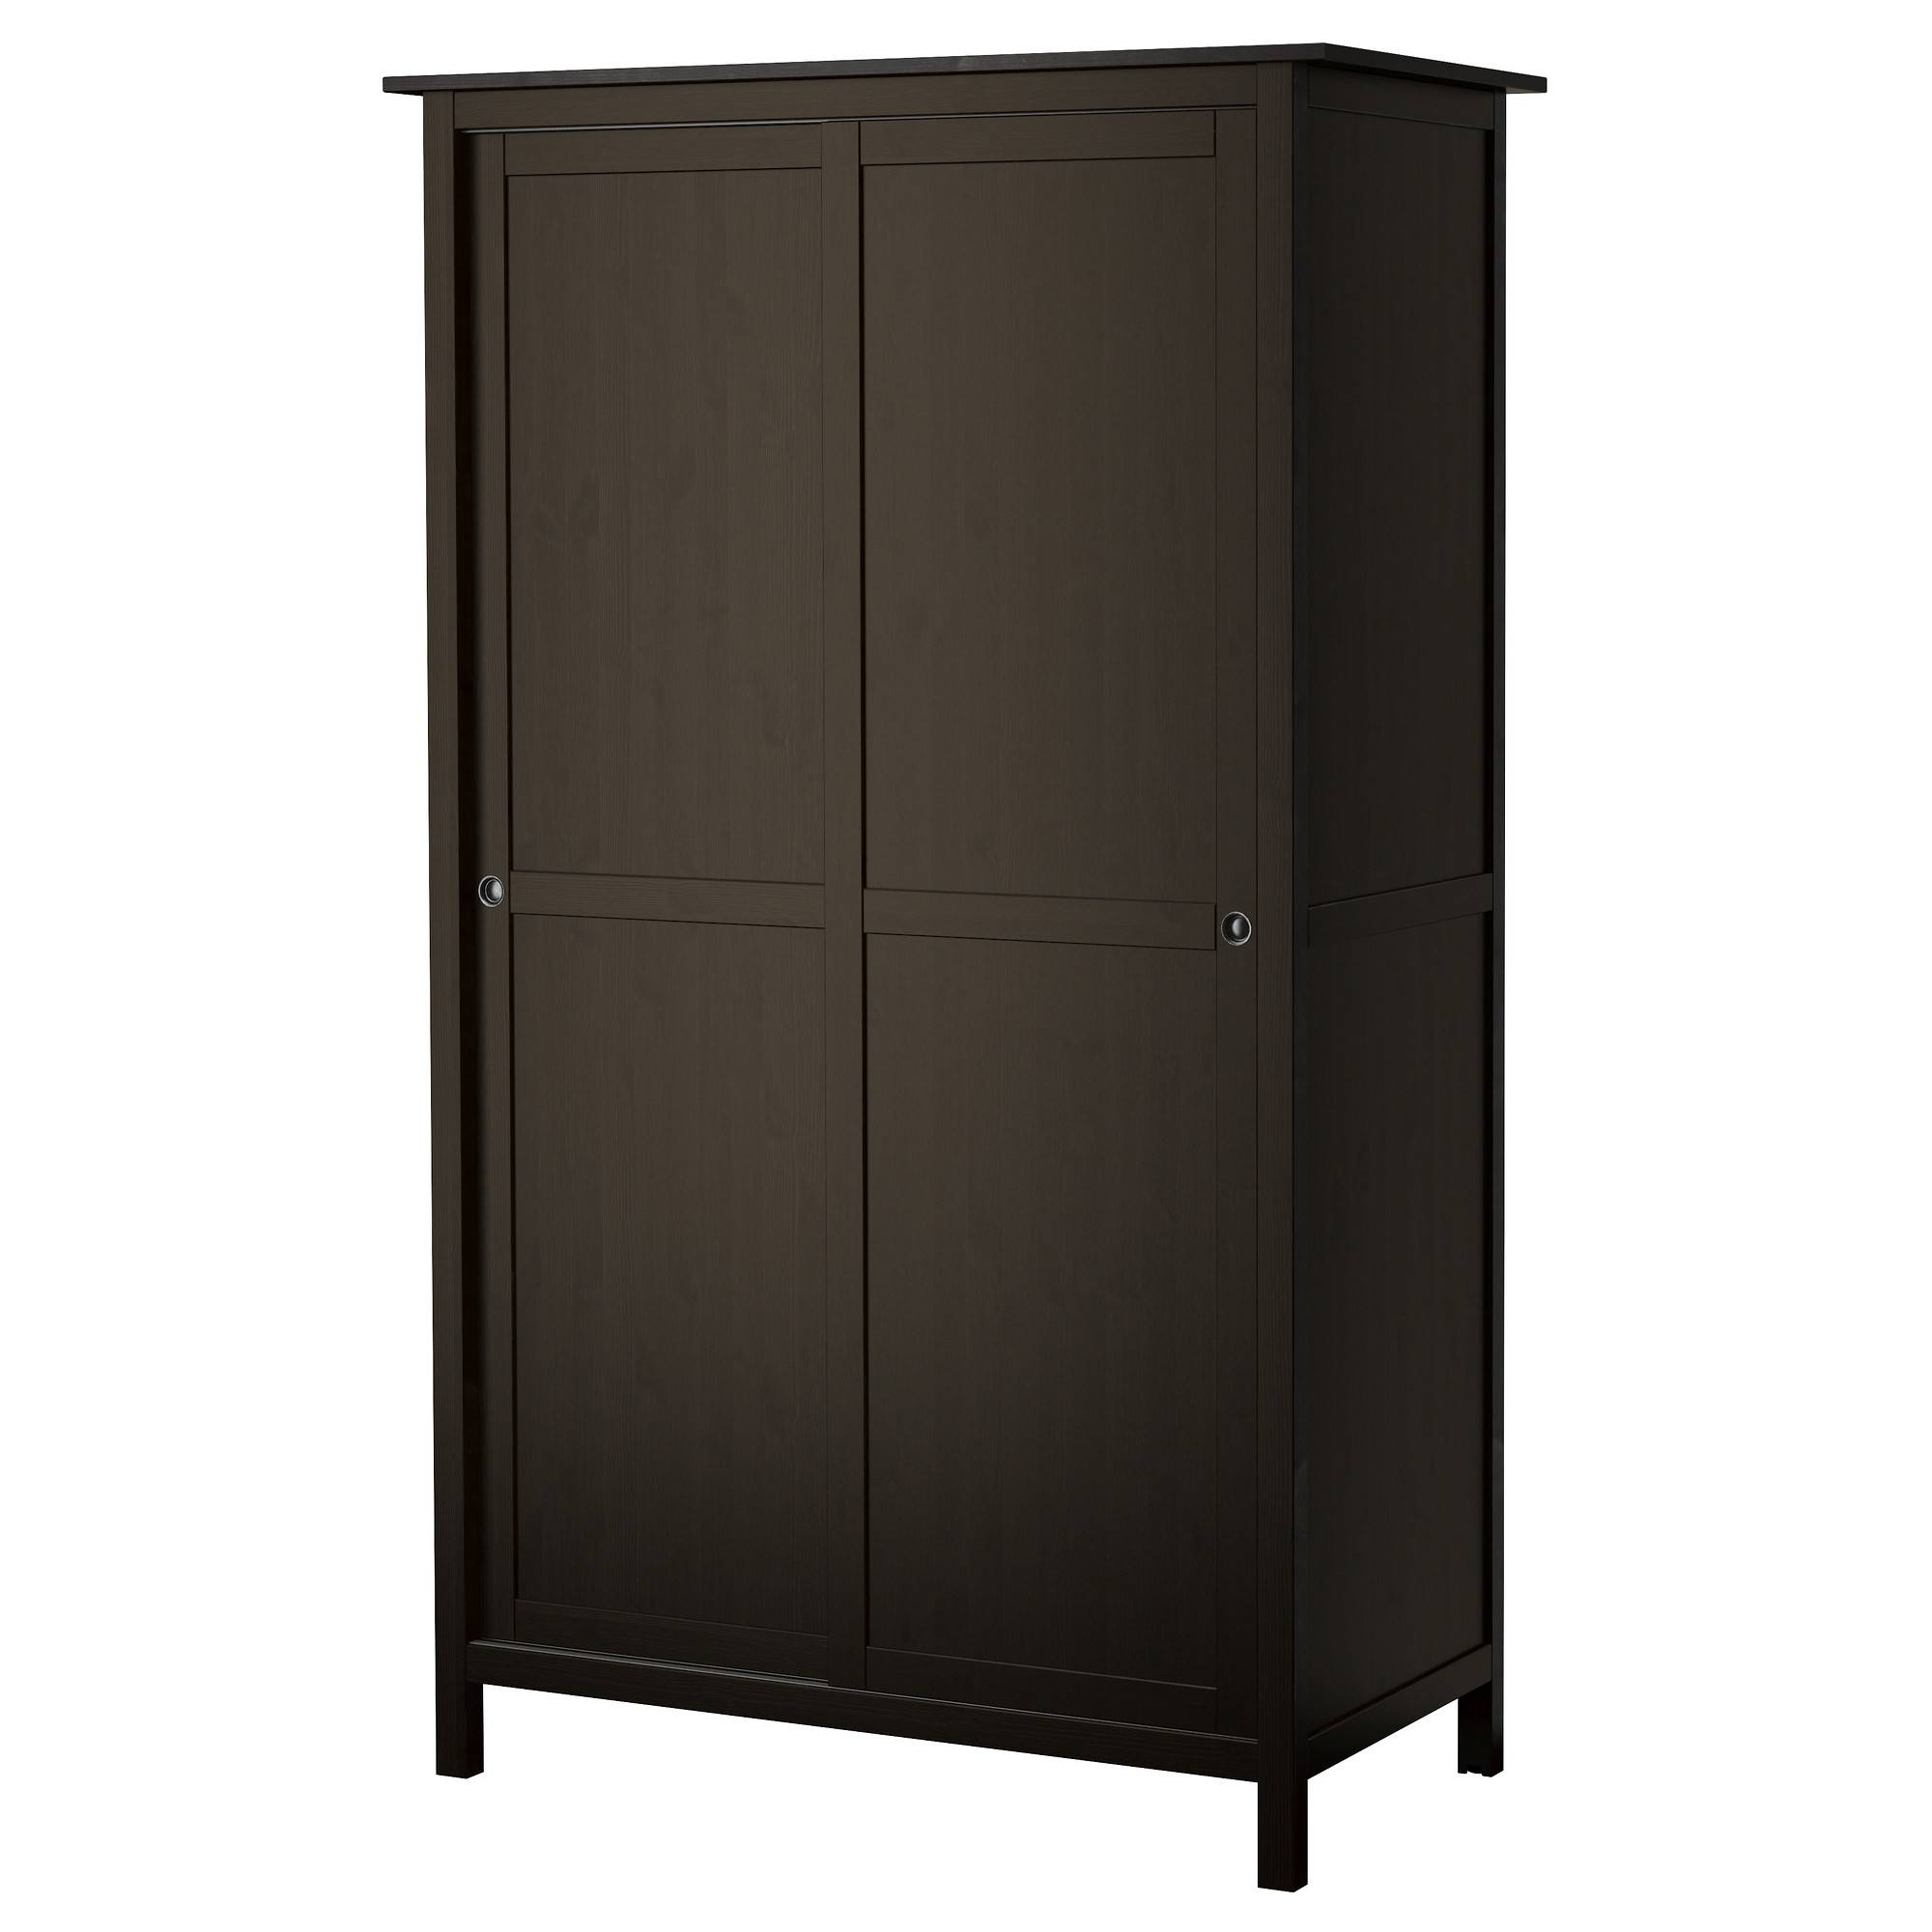 Hemnes Wardrobe With 2 Sliding Doors - Yellow - Ikea for Wardrobe With Shelves and Drawers (Image 14 of 30)